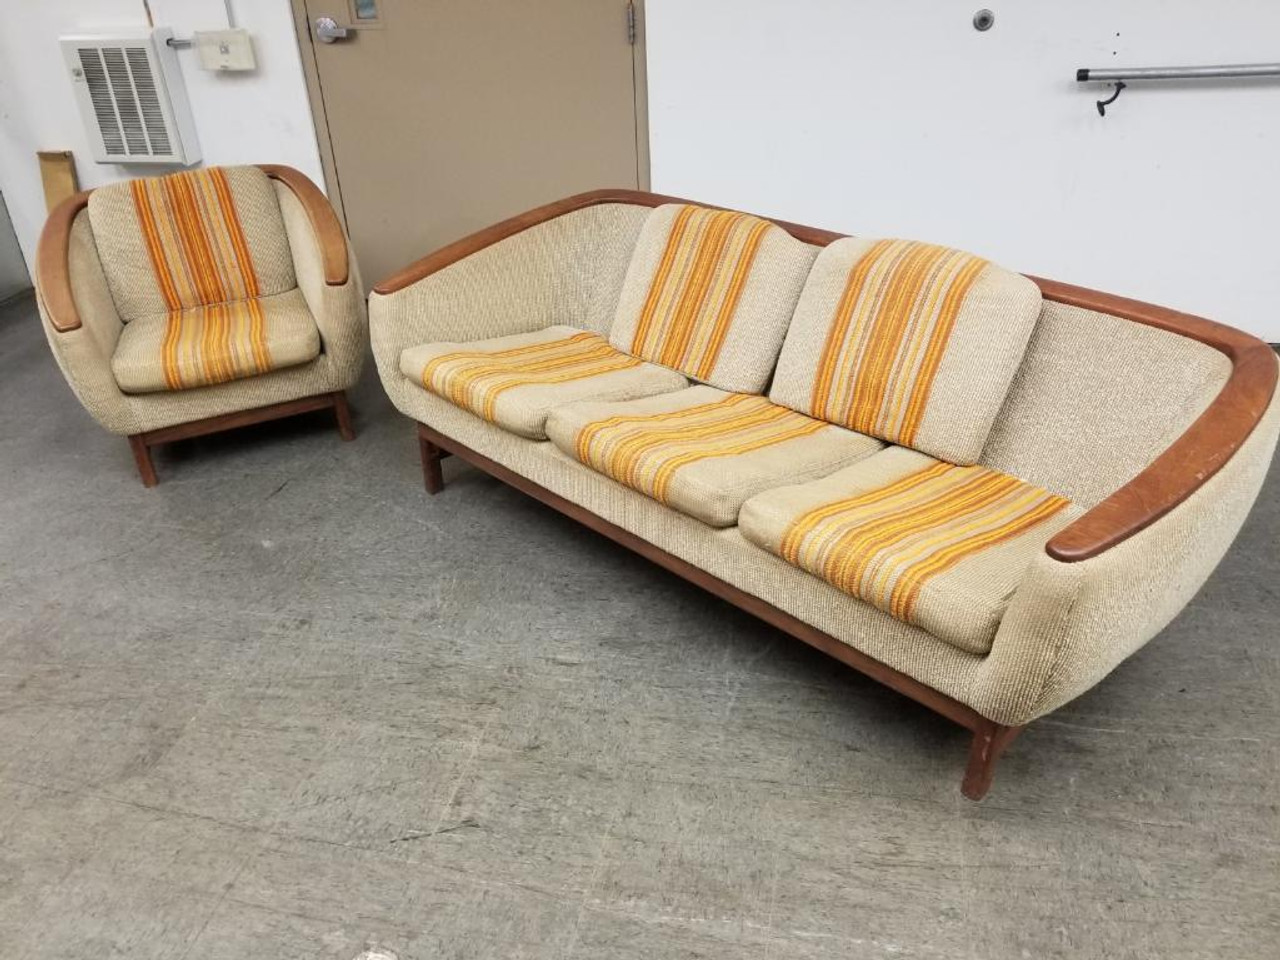 Mid Century Modern Danish R. Huber Curved Back and Barrel Back Lounge Chair  - Set of 2 For Upholstery